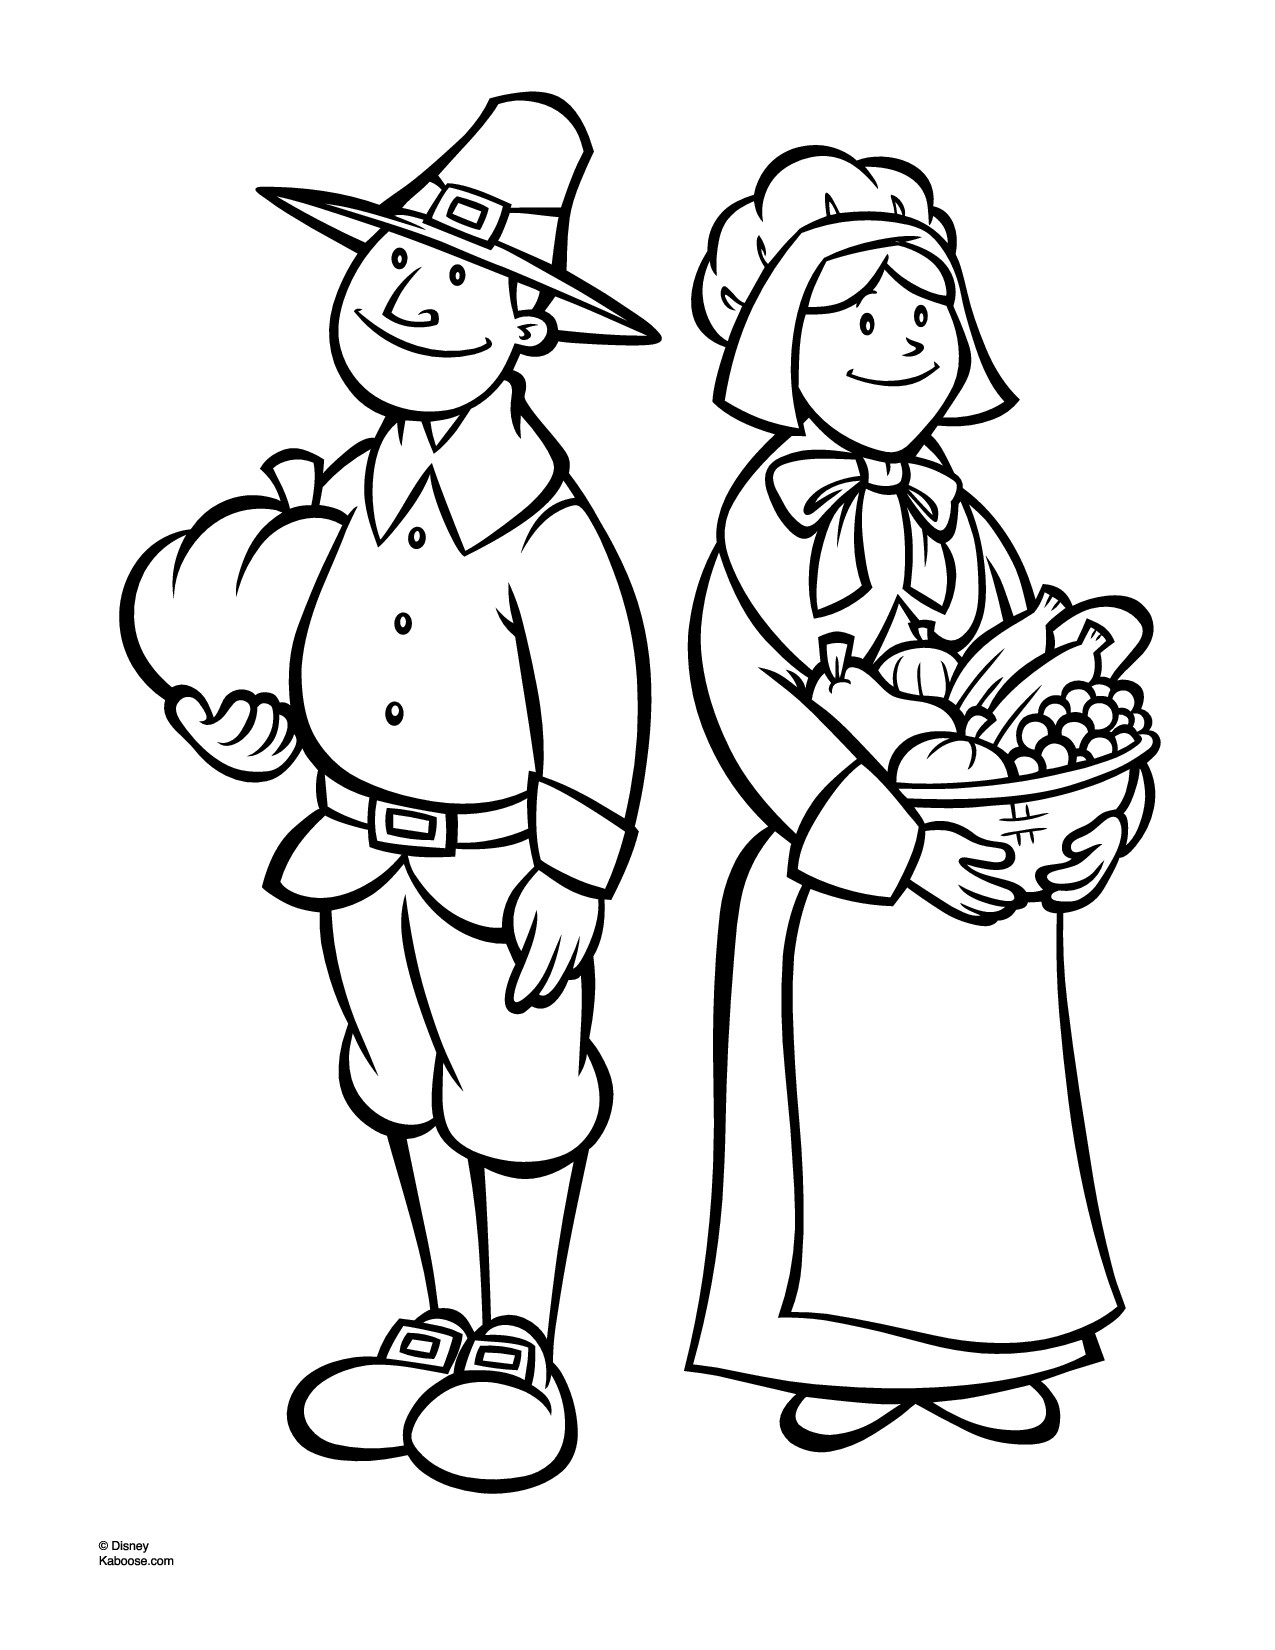 Pilgrim Coloring Pages To Download And Print For Free Pilgrims Coloring Pages Free